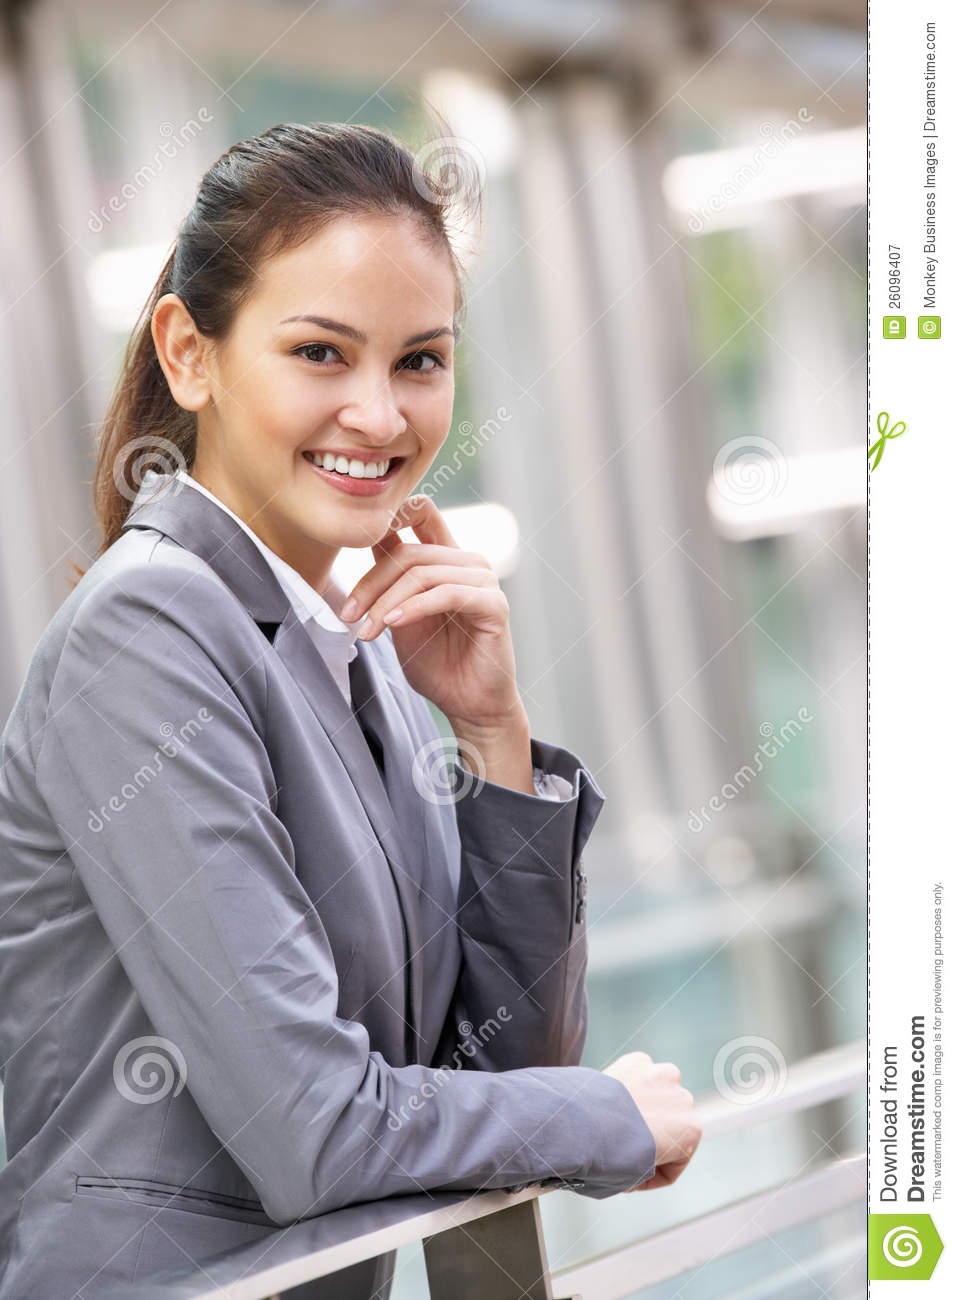 Portrait of hispanic businesswoman outside office royalty free stock photography image 26096407 - Office portrait photography ...